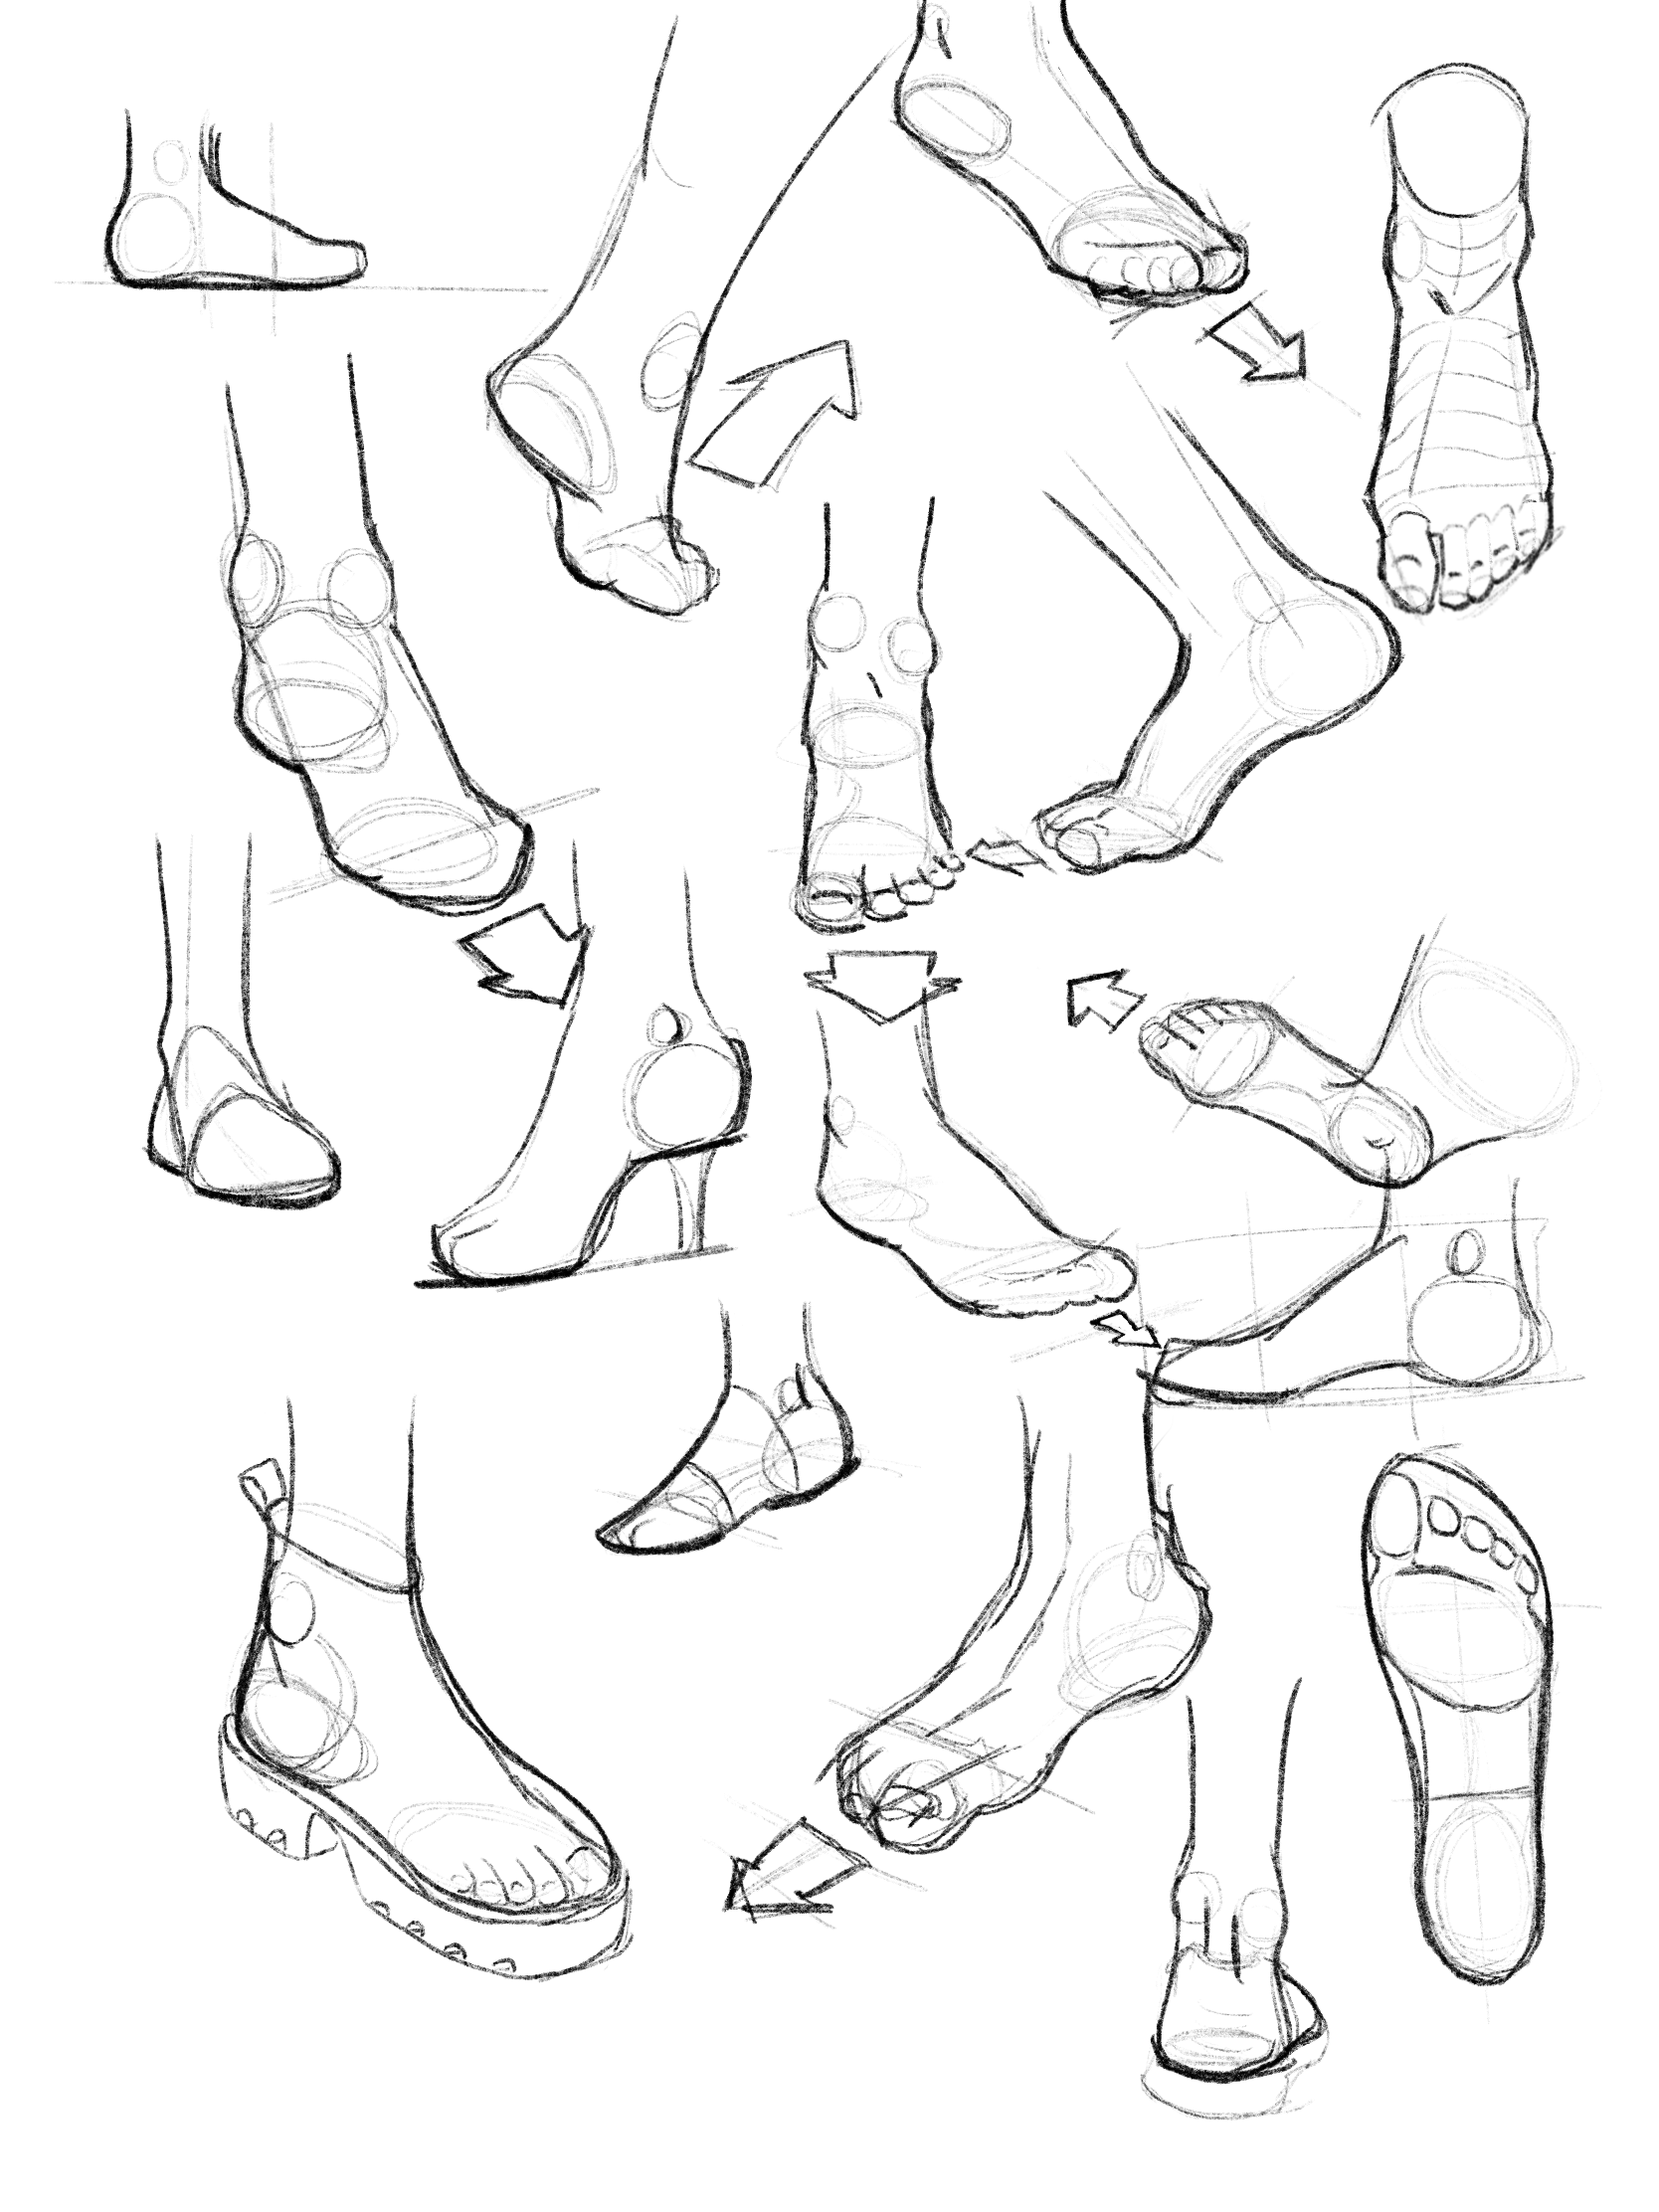 understanding shoe design - To speak the language of this product realm, I studied drawings of feet and types of shoes, researched terminology for shoe types, parts, manufacturing, and historyandinterviewed people of varying fashion sense and background on their relationship to shoes, buying habits and style.